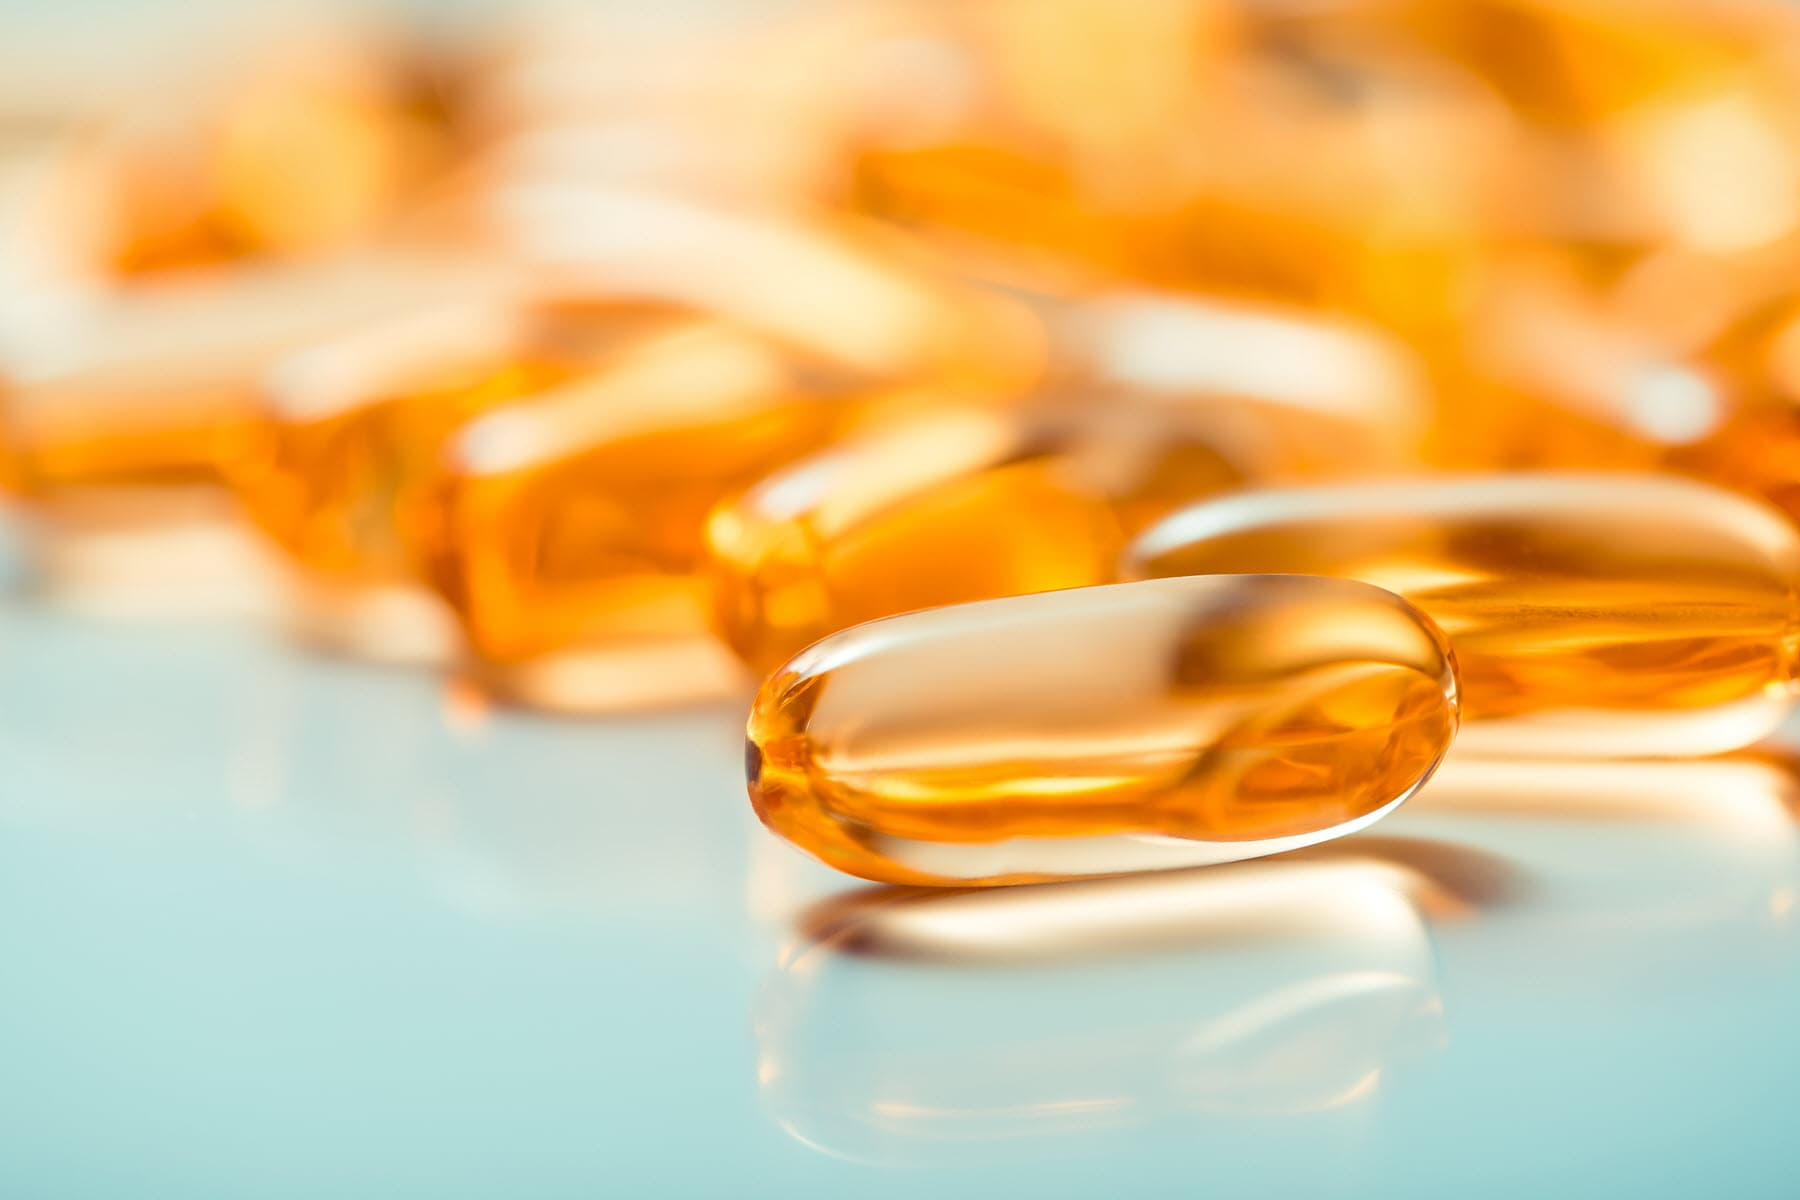 Fish Oil Supplements May Help Fight Depression  - web md